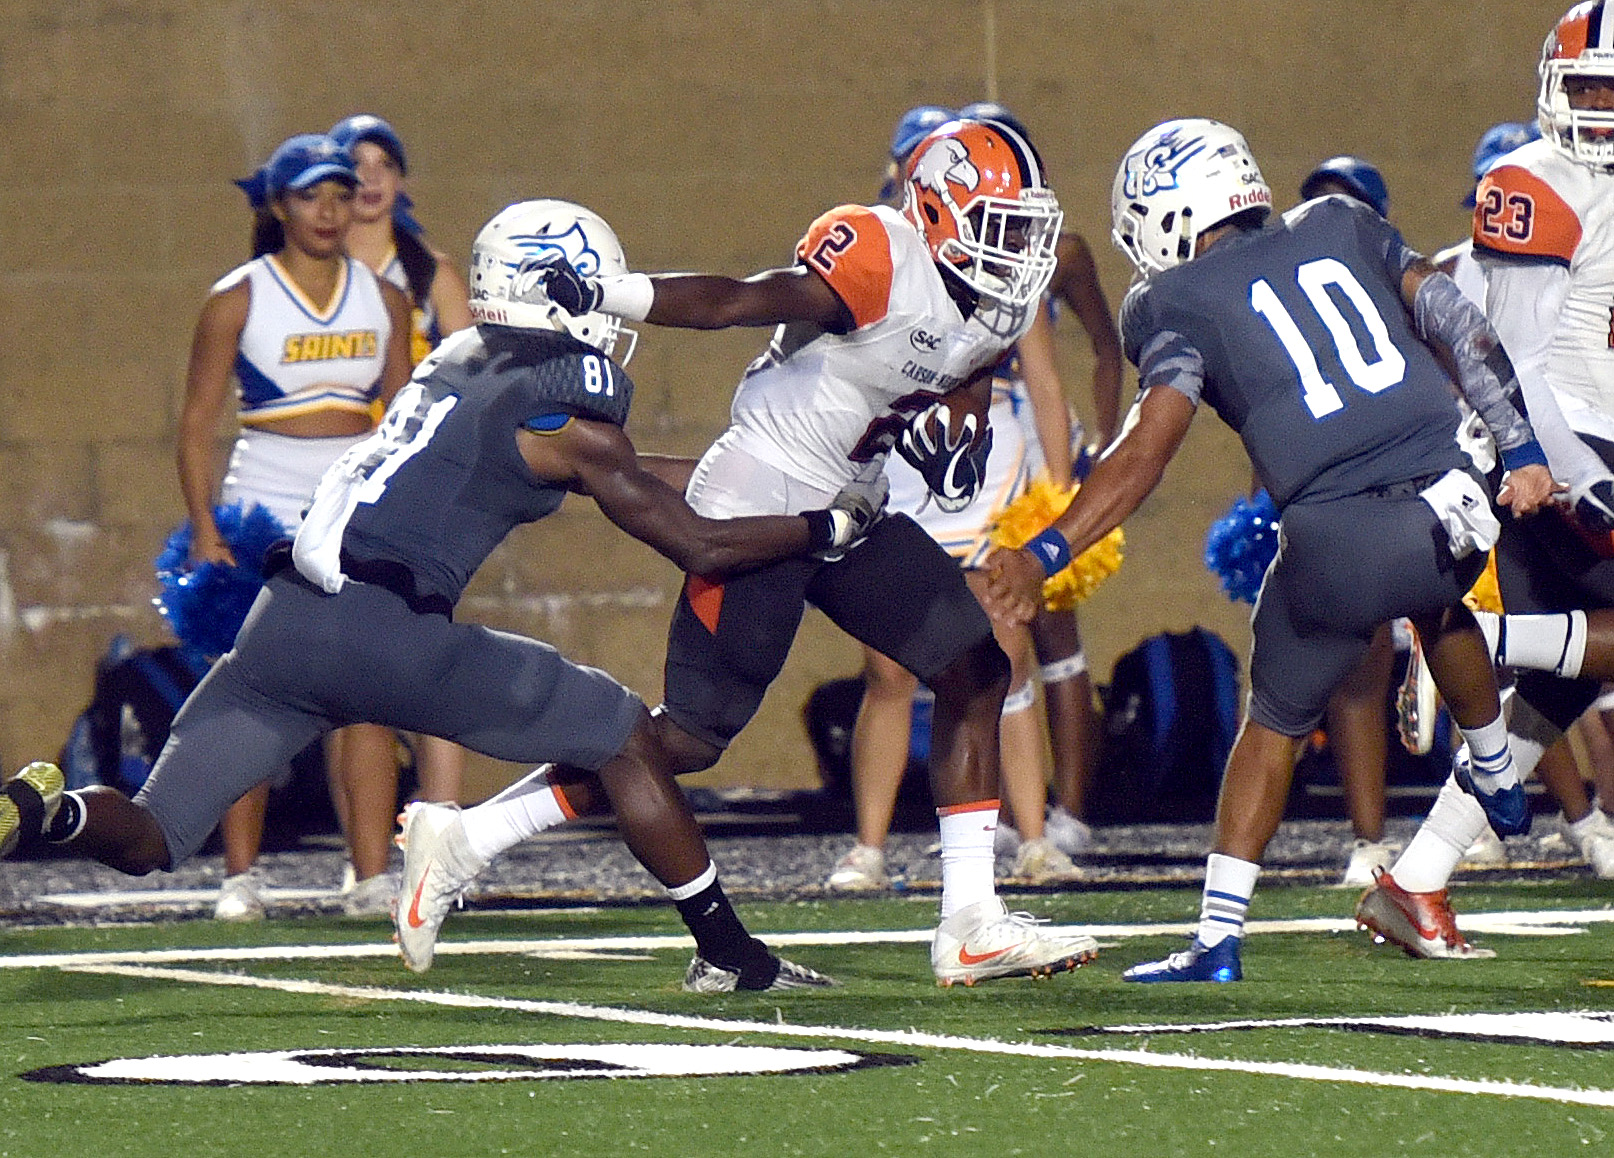 Three second-half turnovers propel Eagles to 31-20 win at Limestone